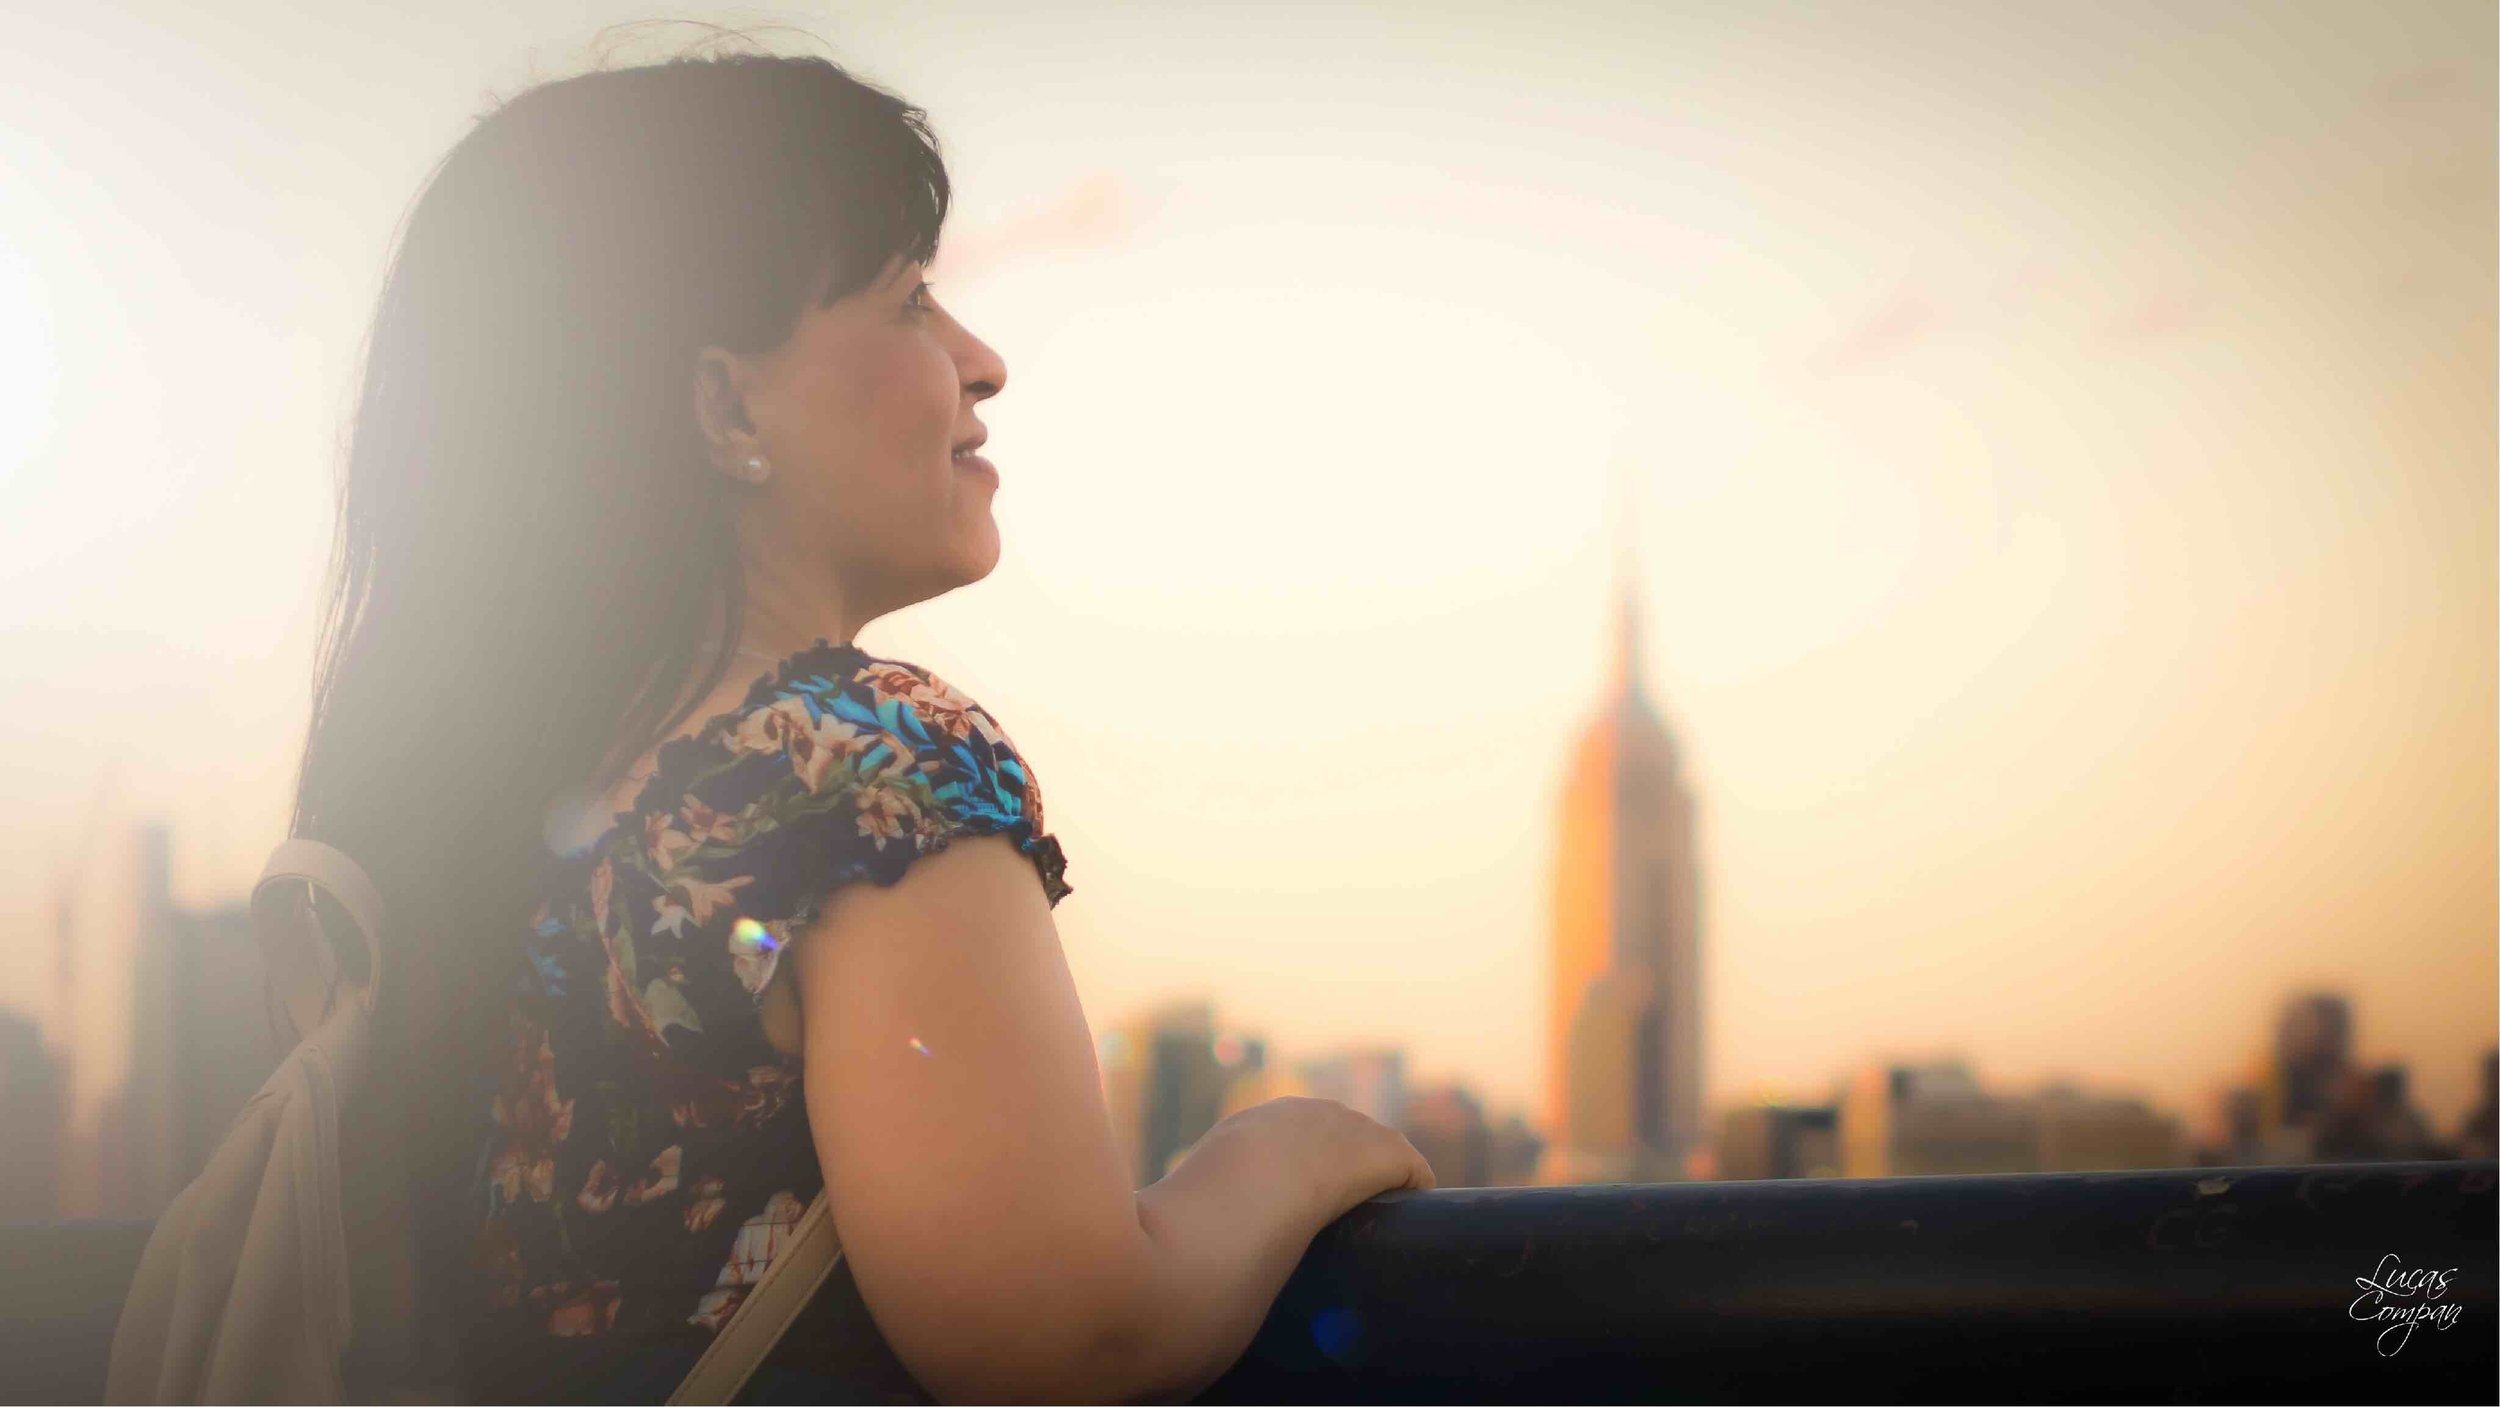 italian-born agostina cois is passionate about new york city. she admires her favorite landmark: the iconic empire state building